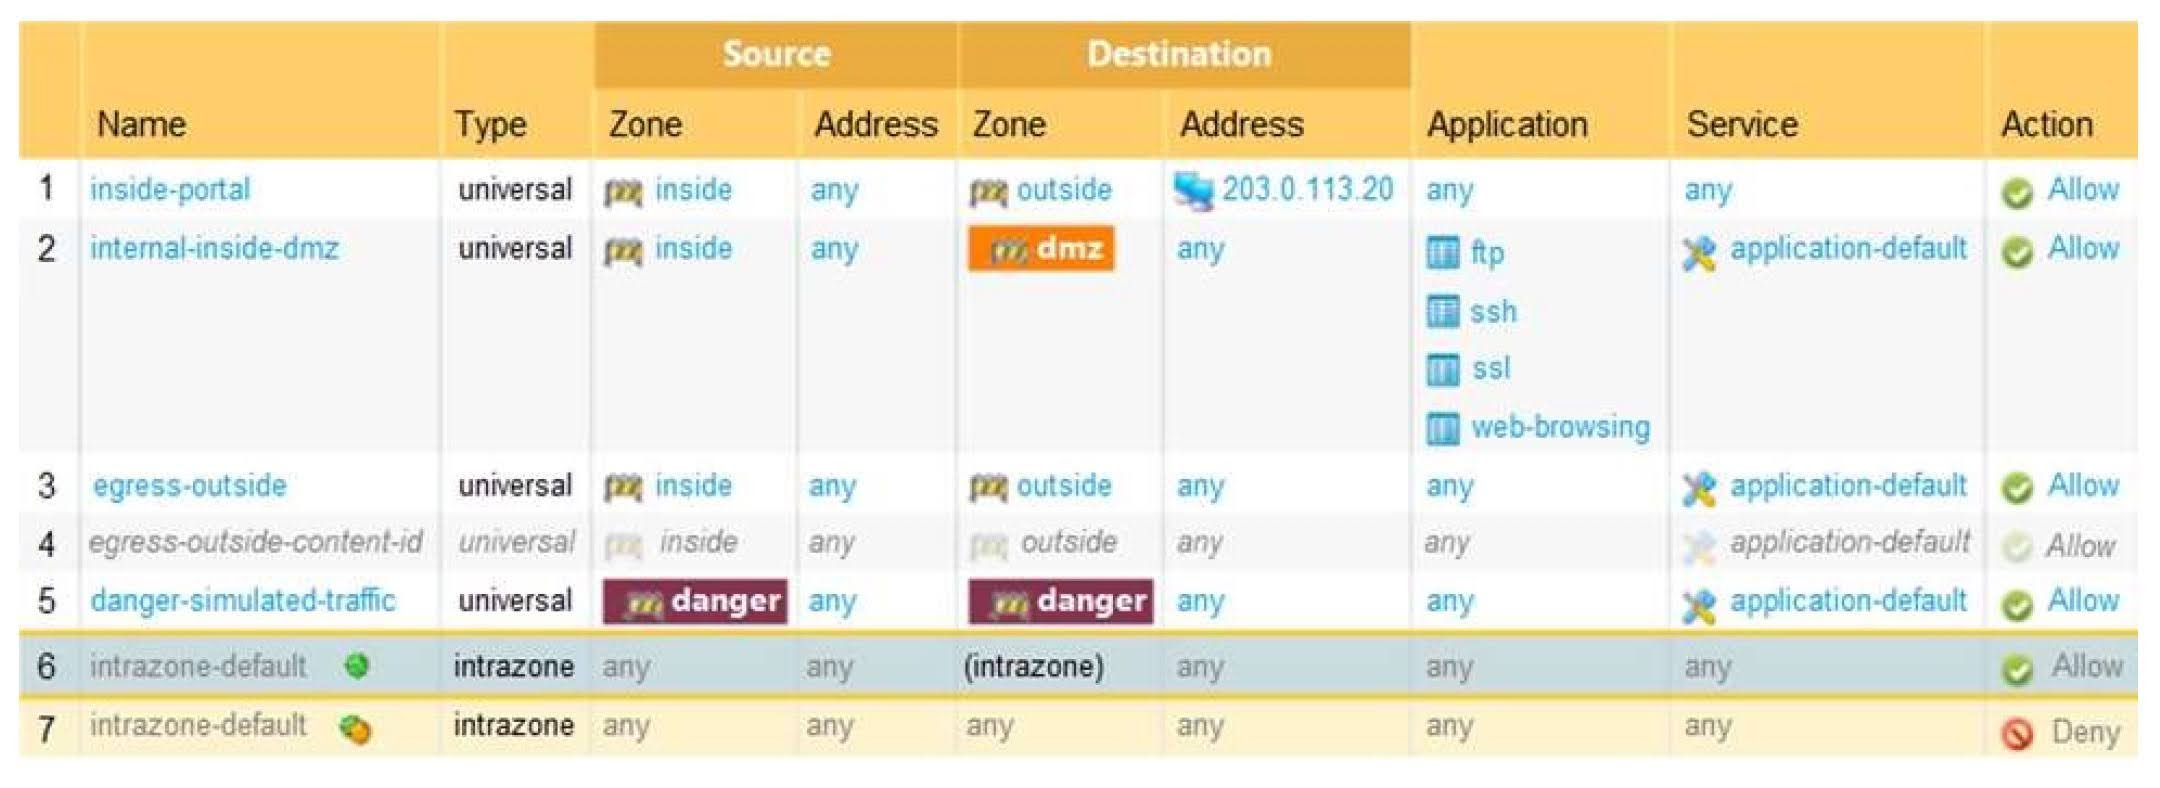 Based on the shown security policy, which Security policy rule would match all FTP traffic from the inside zone to the outside zone?